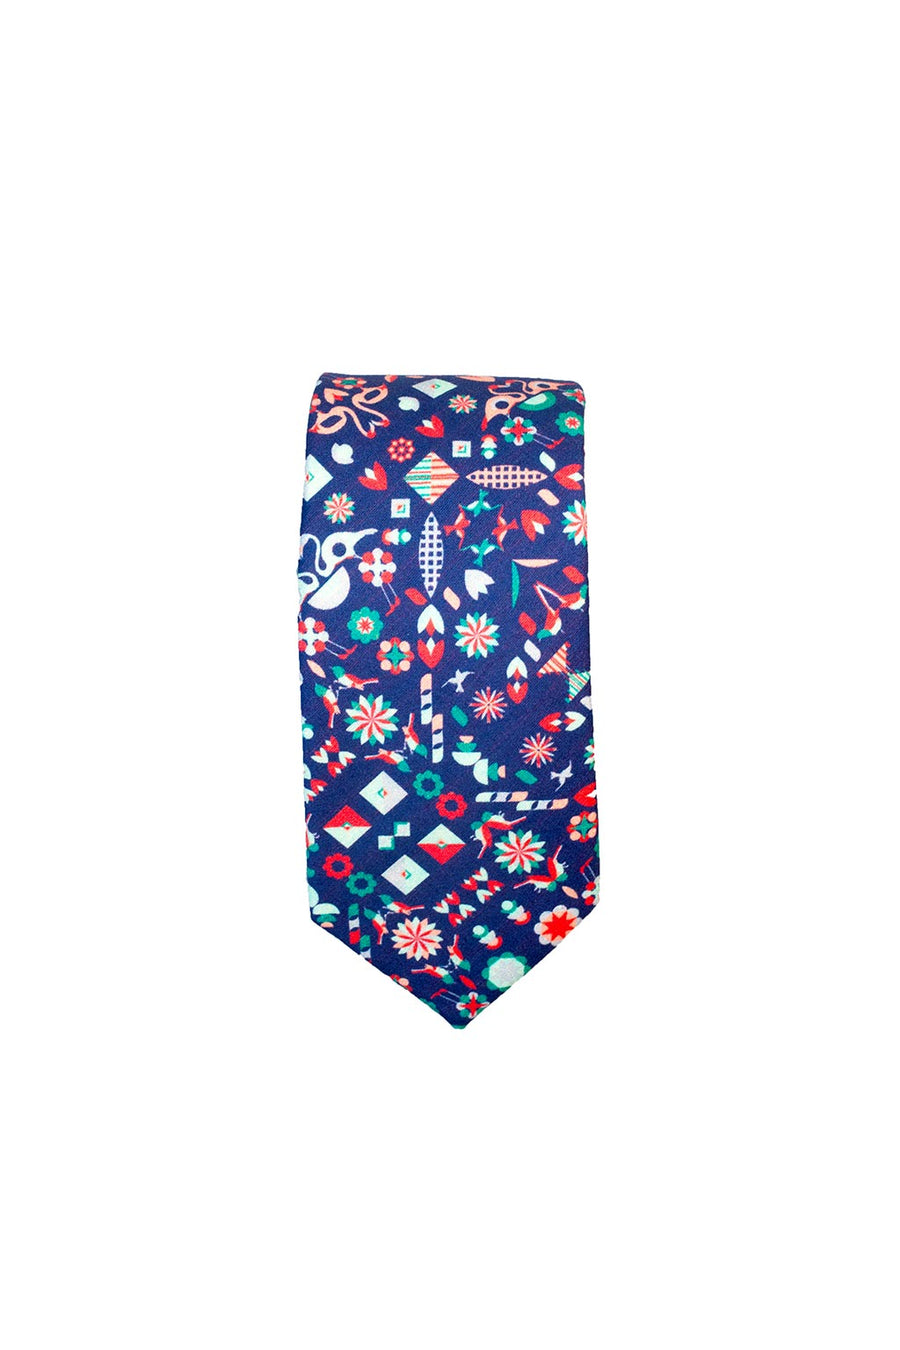 TIE IN BLUE BIRD PRINT